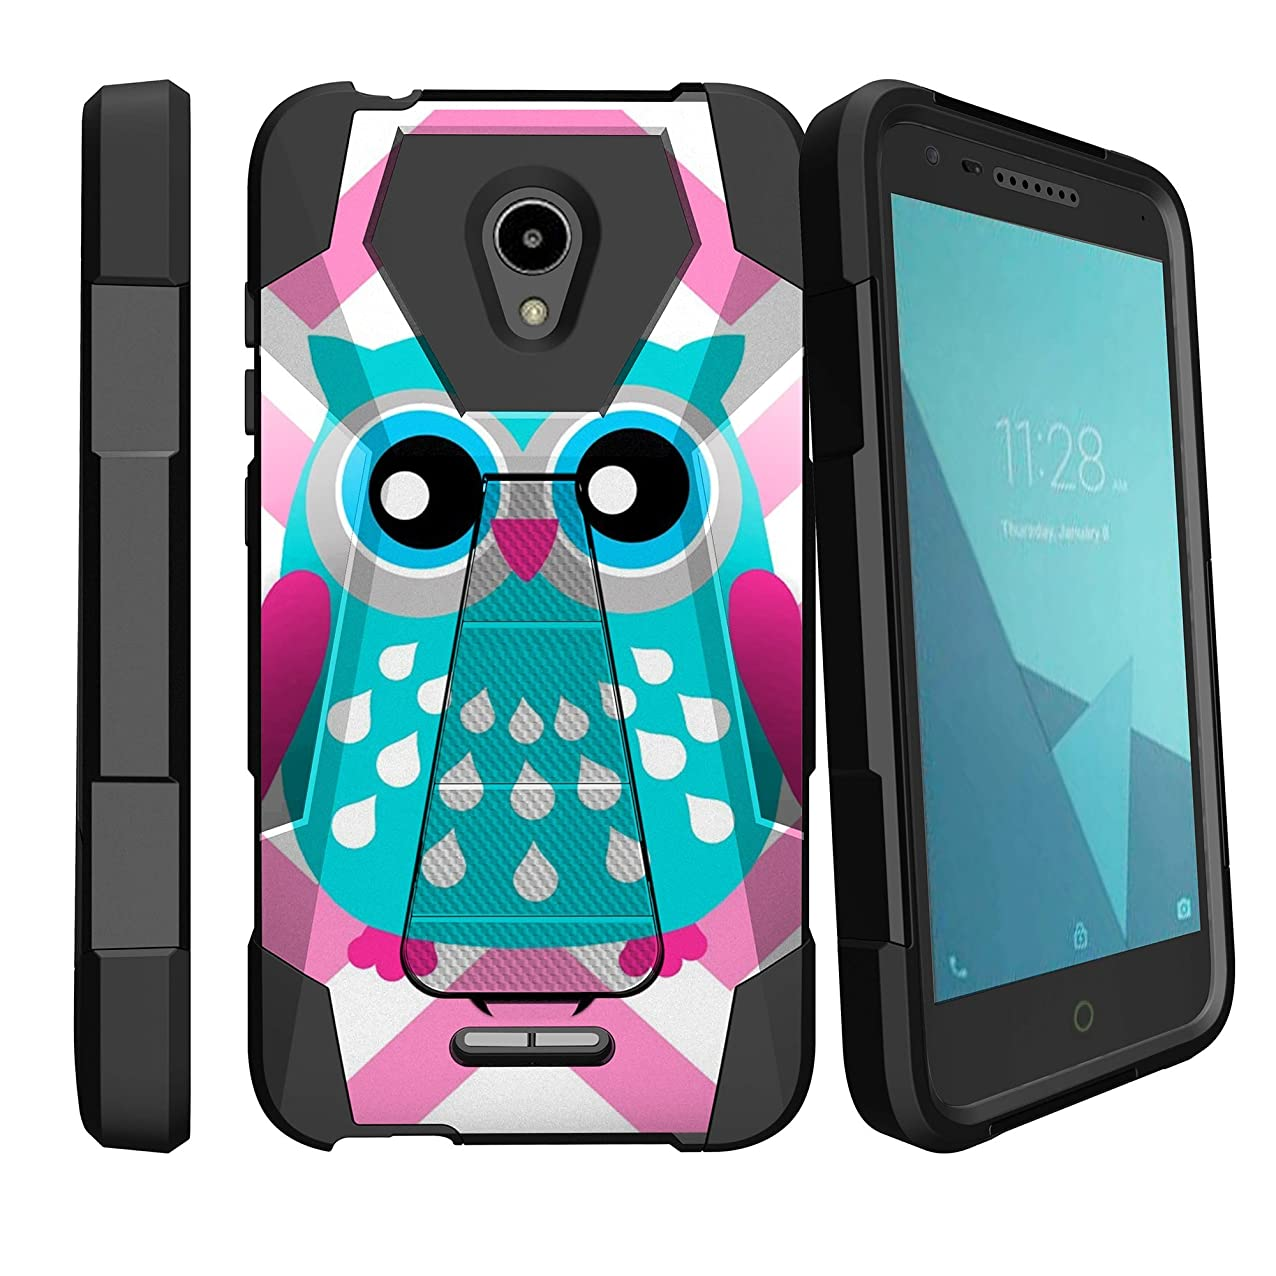 MINITURTLE Compatible with Alcatel Verso, Ideal Xcite, Raven A574BL, Fiji Kickstand Dual Layer Hybrid Drop Protection Shock Absorbing Rugged - Blue Pink Owl ytlupfecguwar520